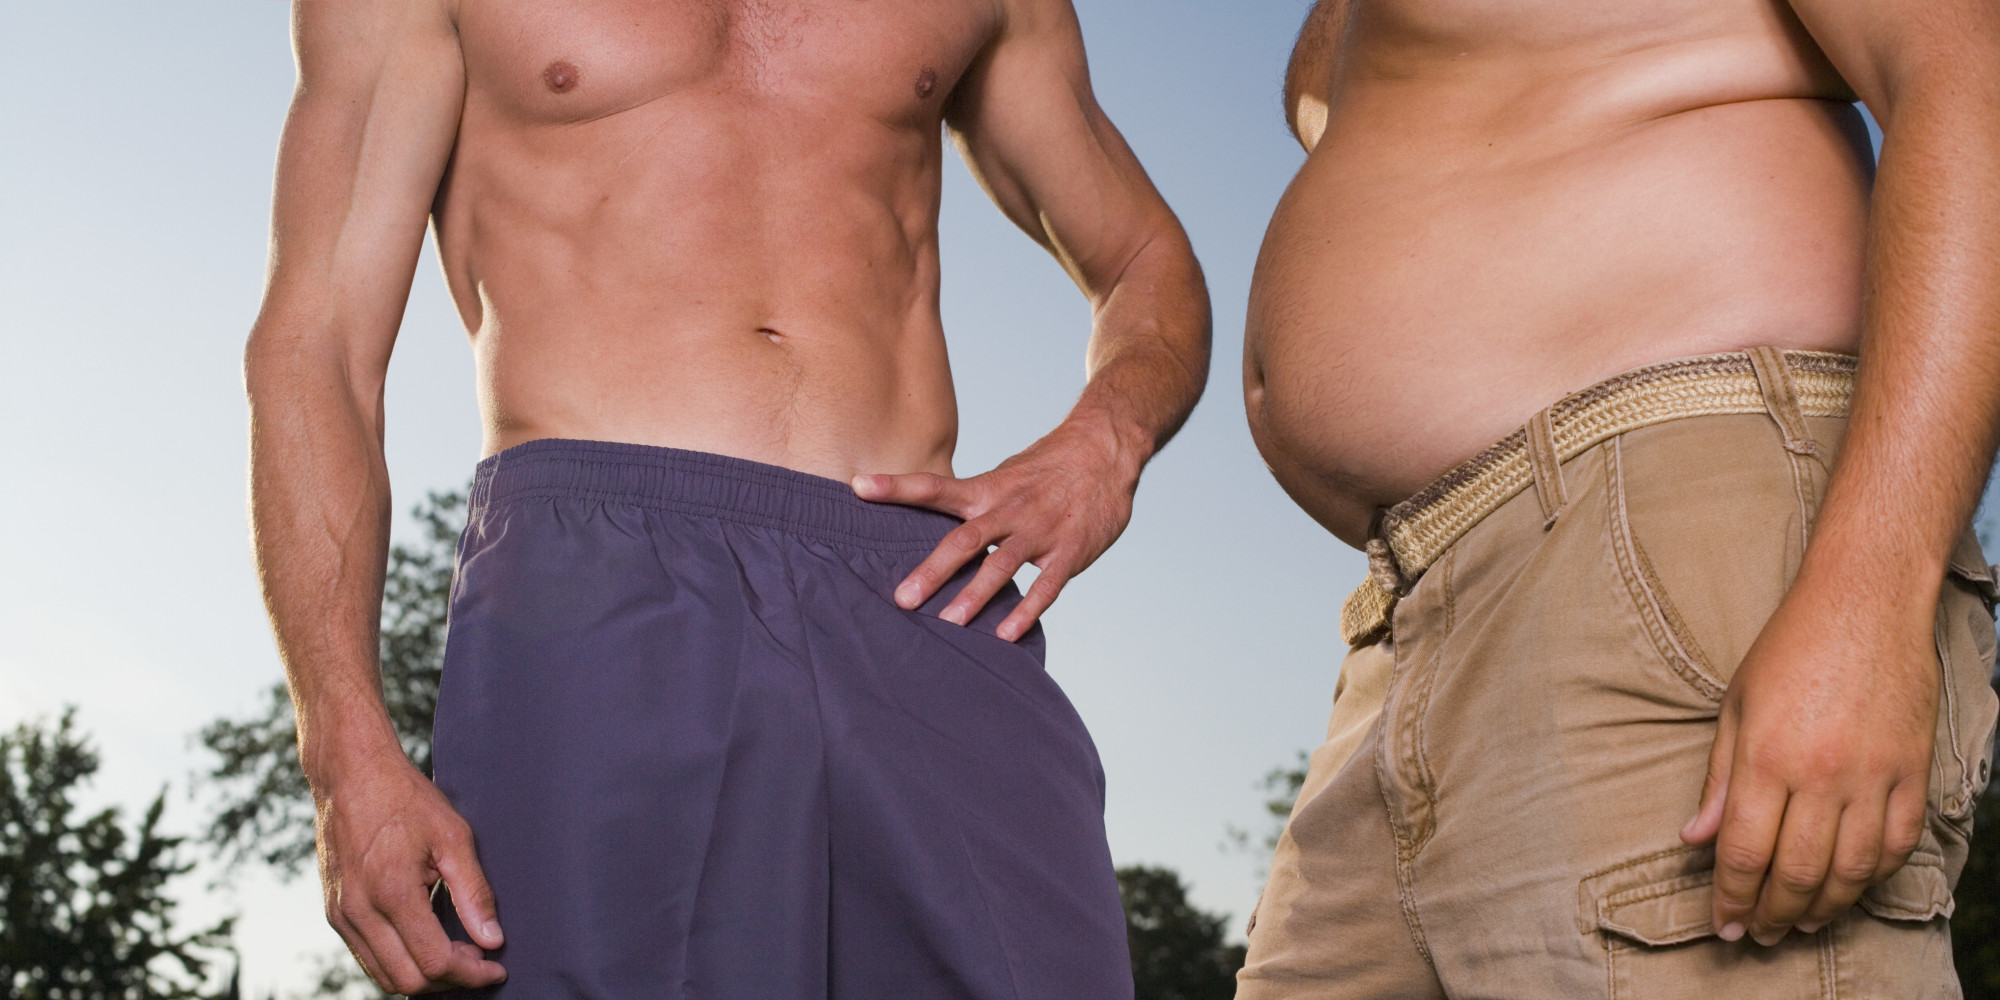 Torsos of fit man and overweight man, outdoors